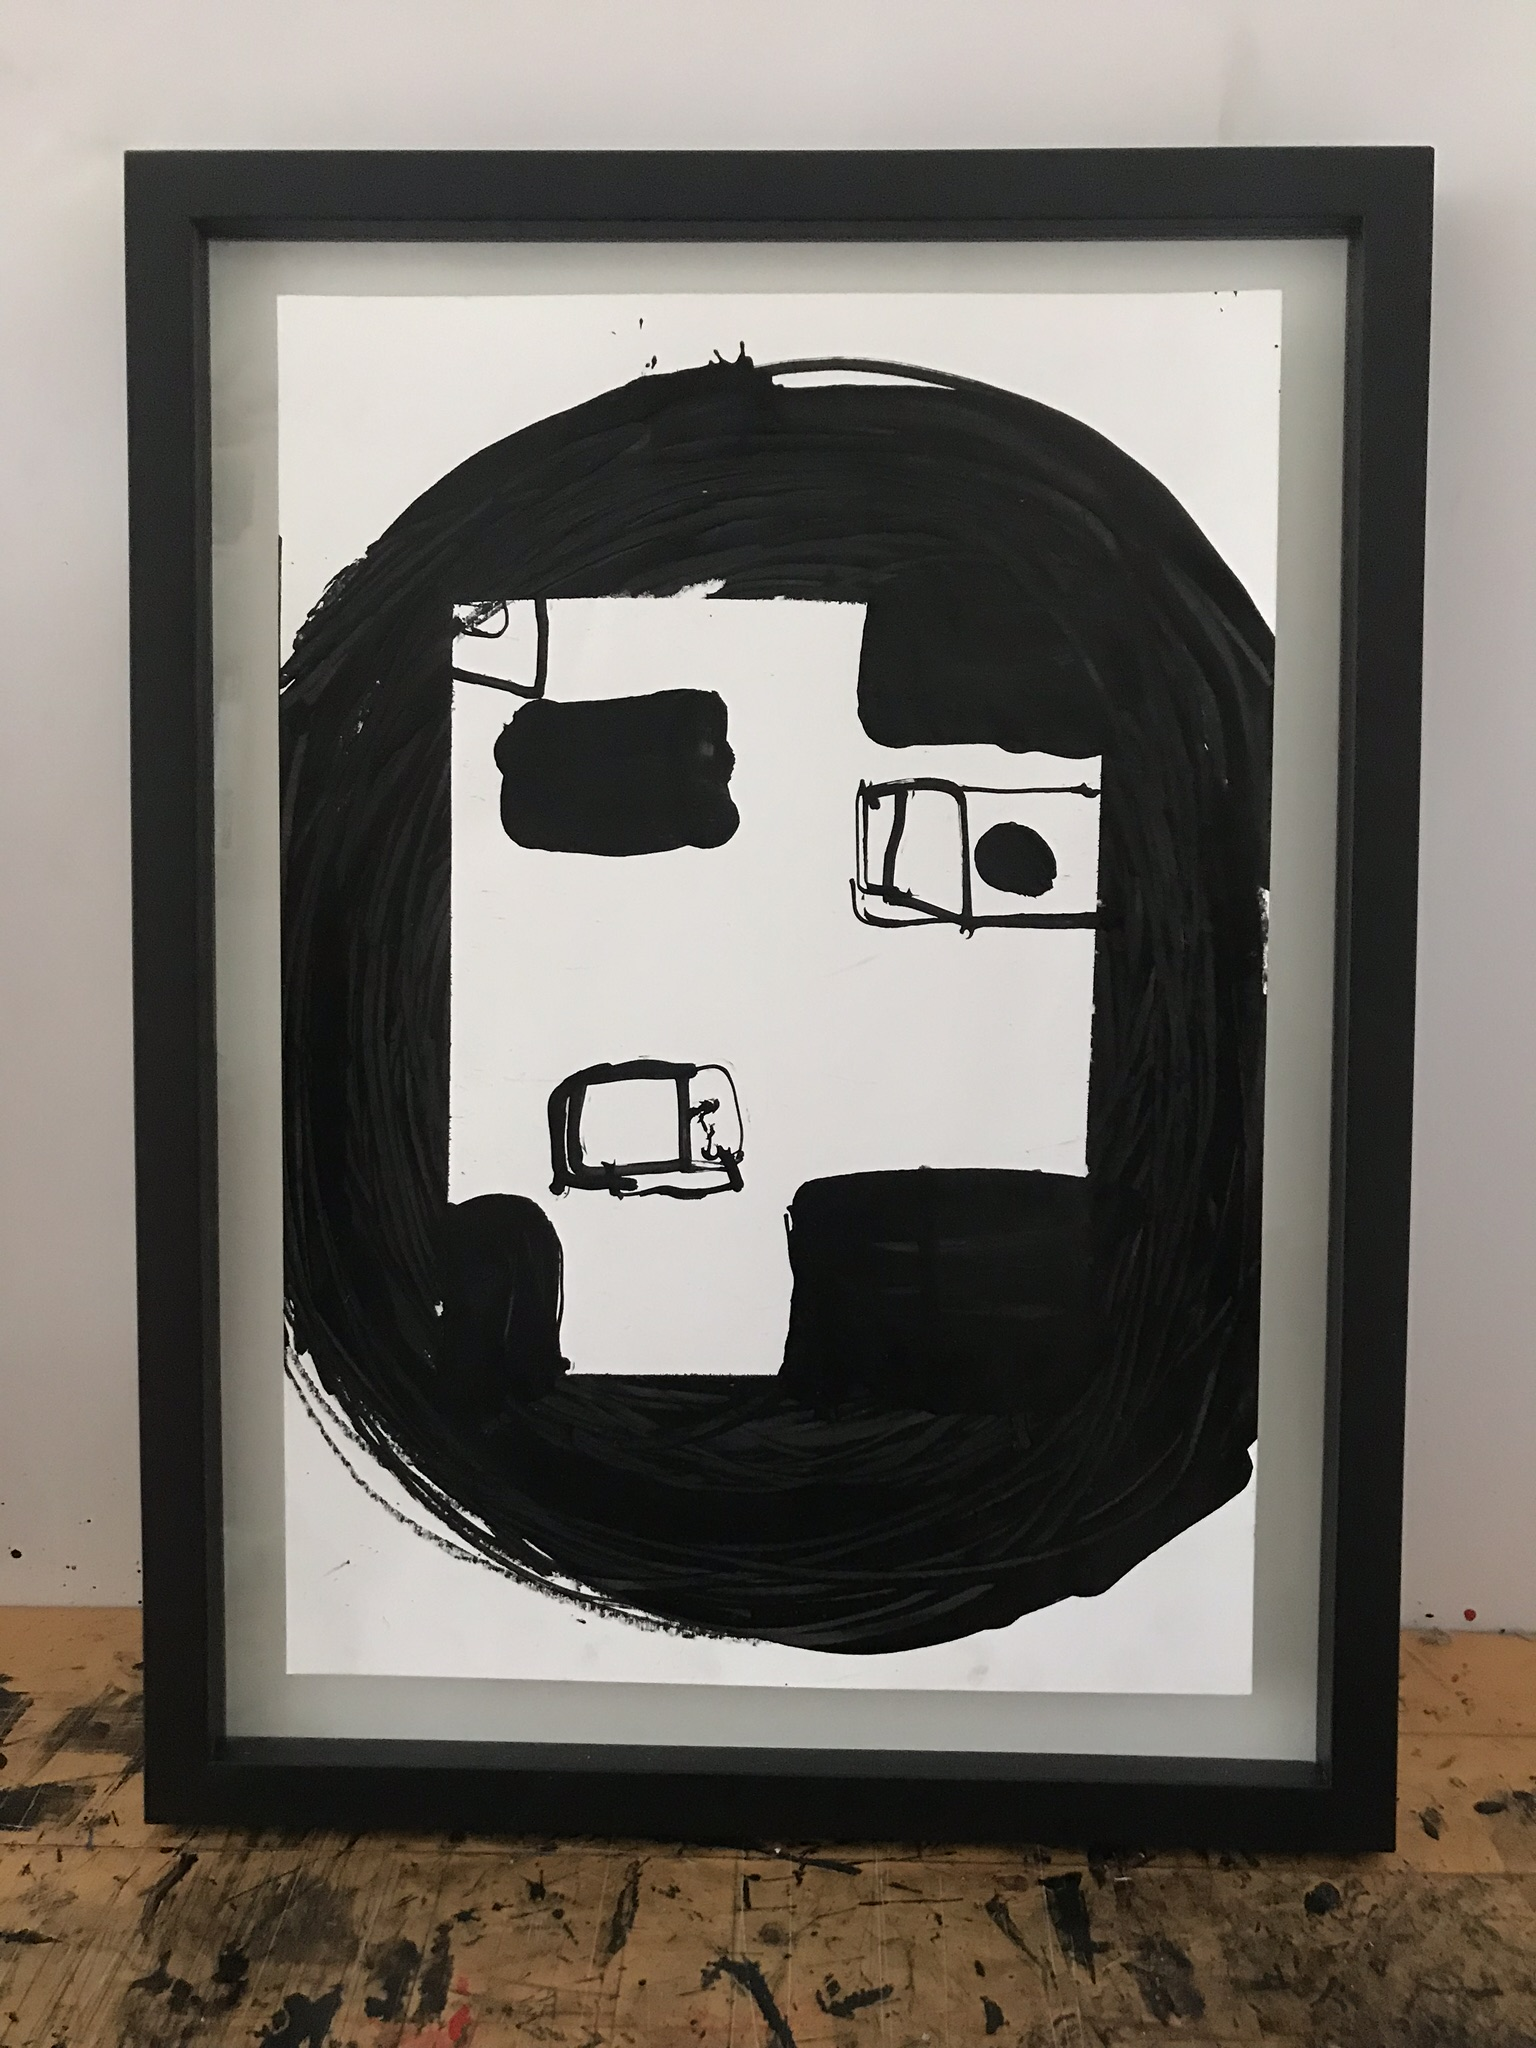 drawings, abstract, graphical, minimalistic, people, black, acrylic, crayons, abstract-forms, Buy original high quality art. Paintings, drawings, limited edition prints & posters by talented artists.